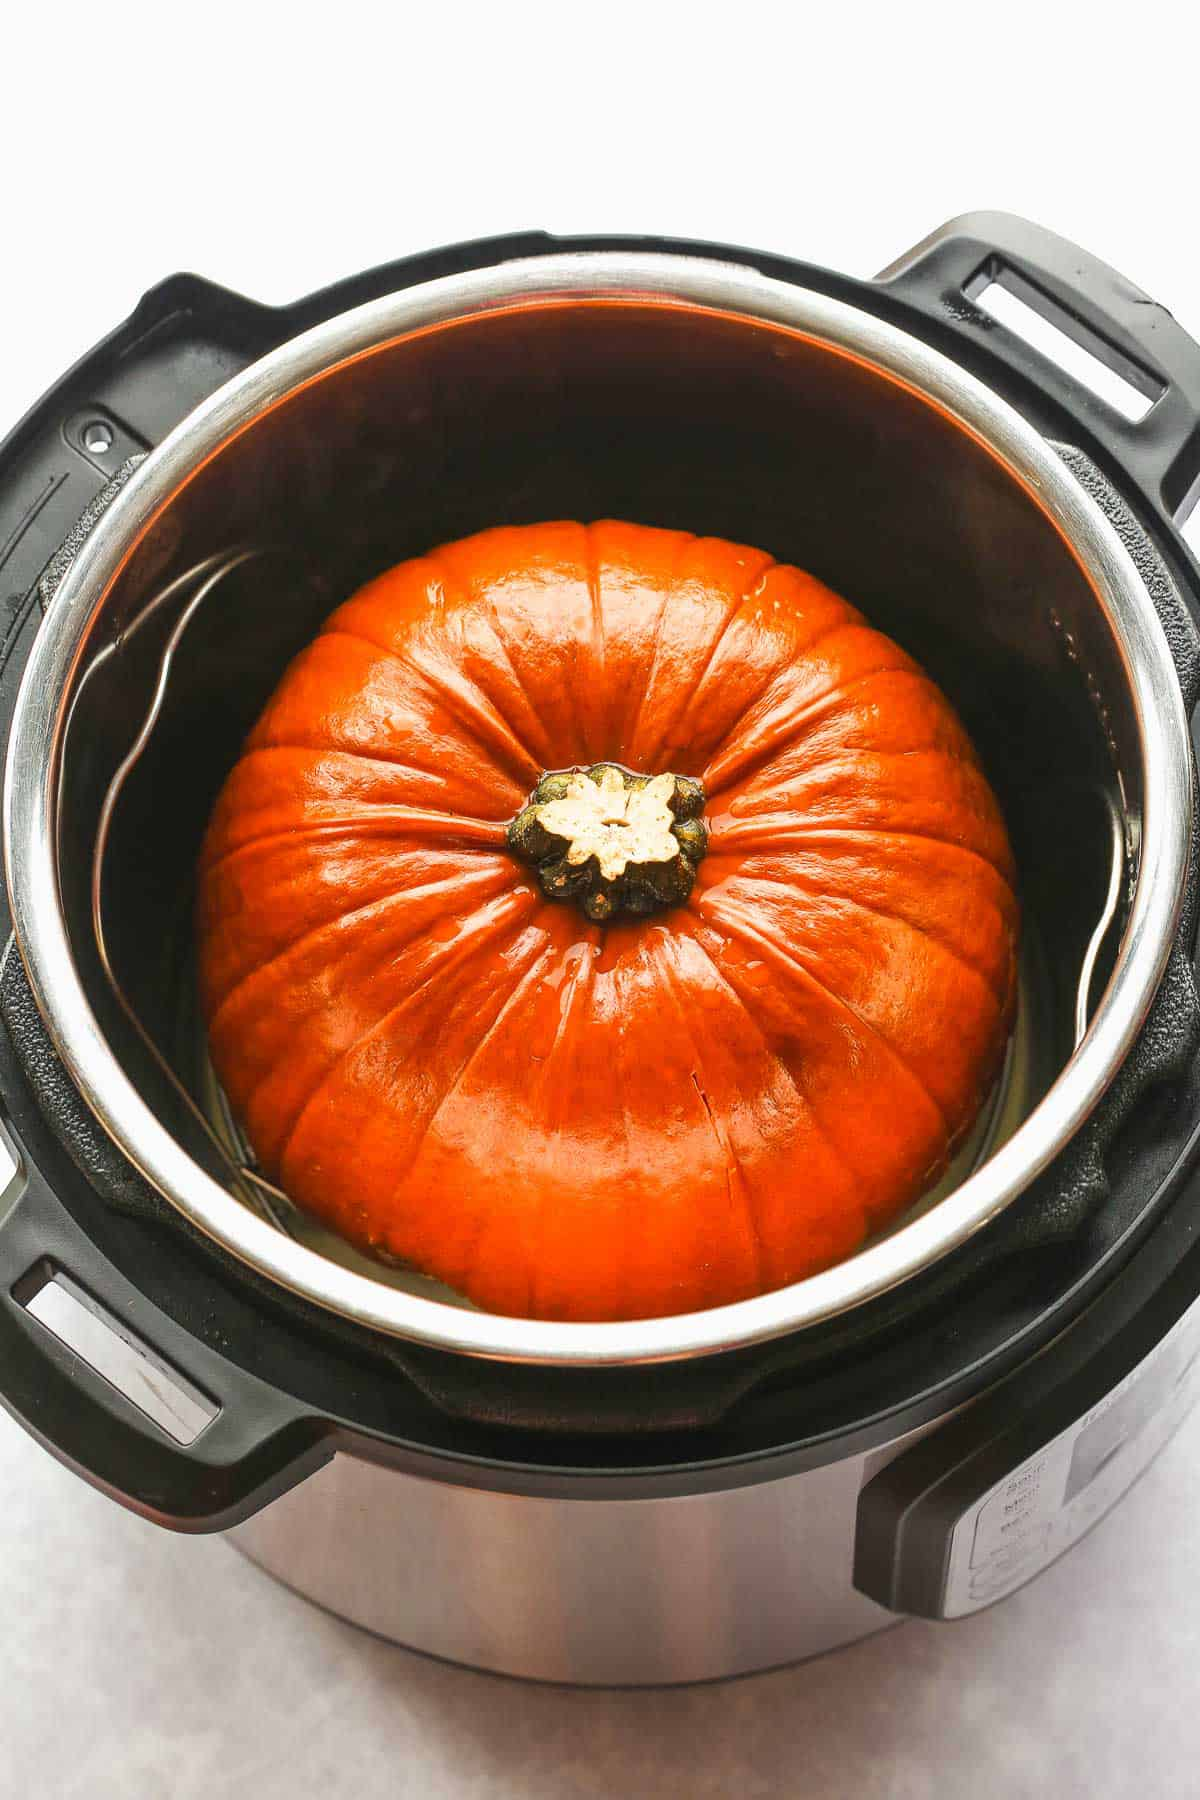 A whole pumpkin in the Instant Pot